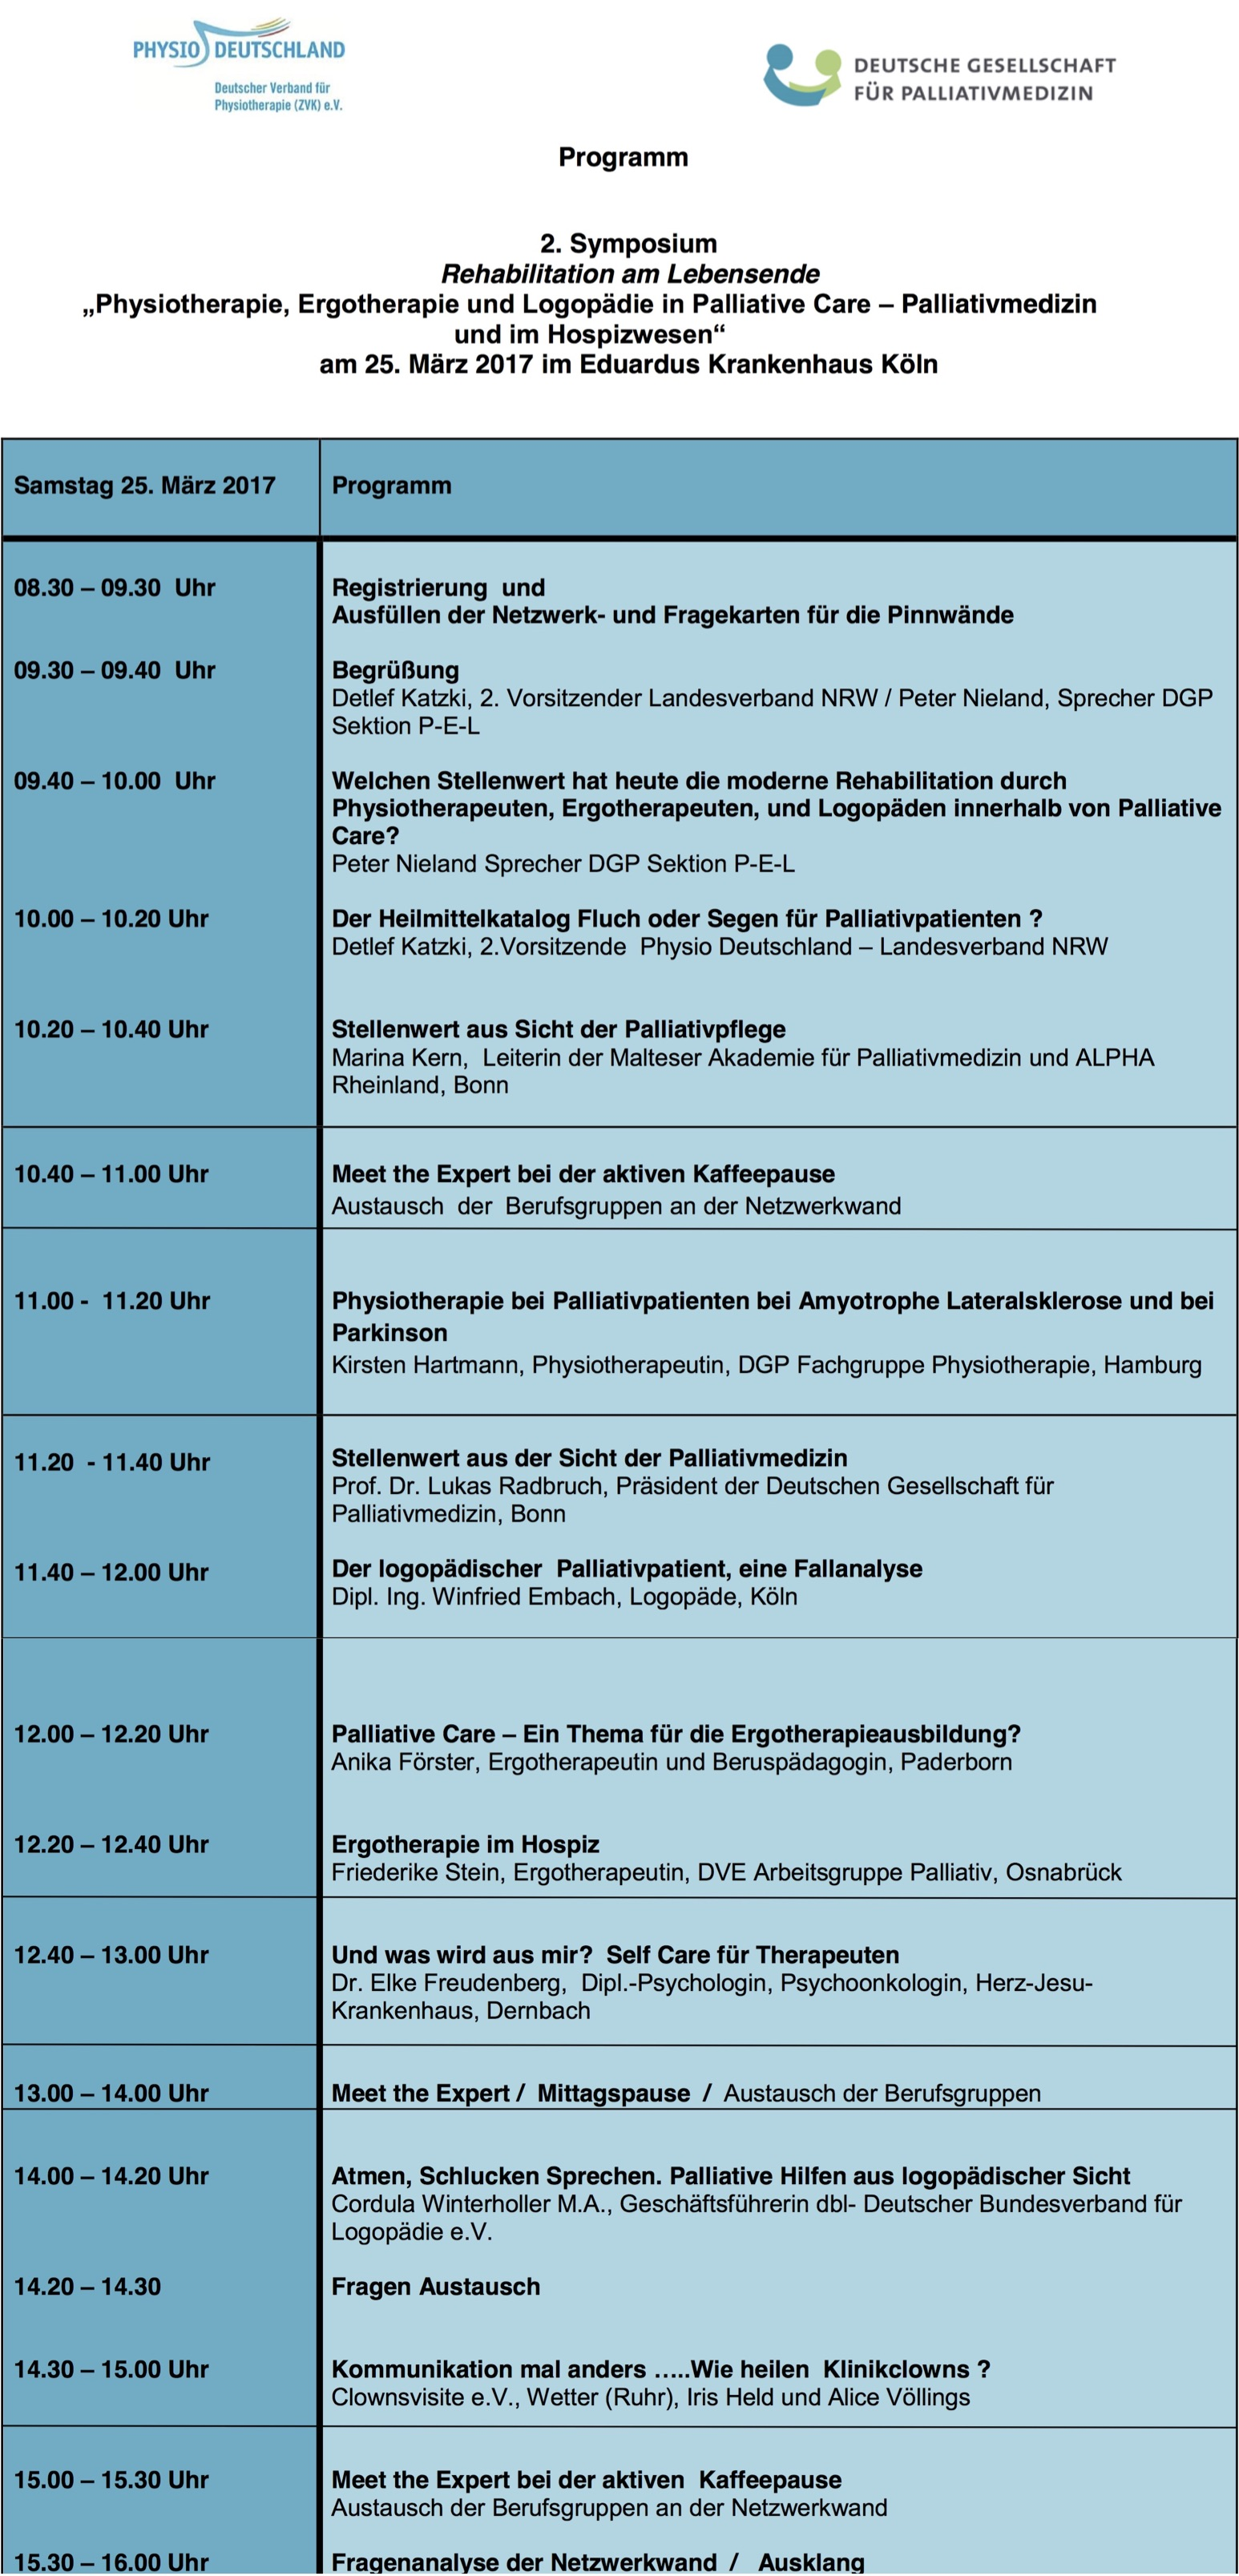 symposium-rehabilitation-am-lebensende-palliativ-winfried-embachjpg